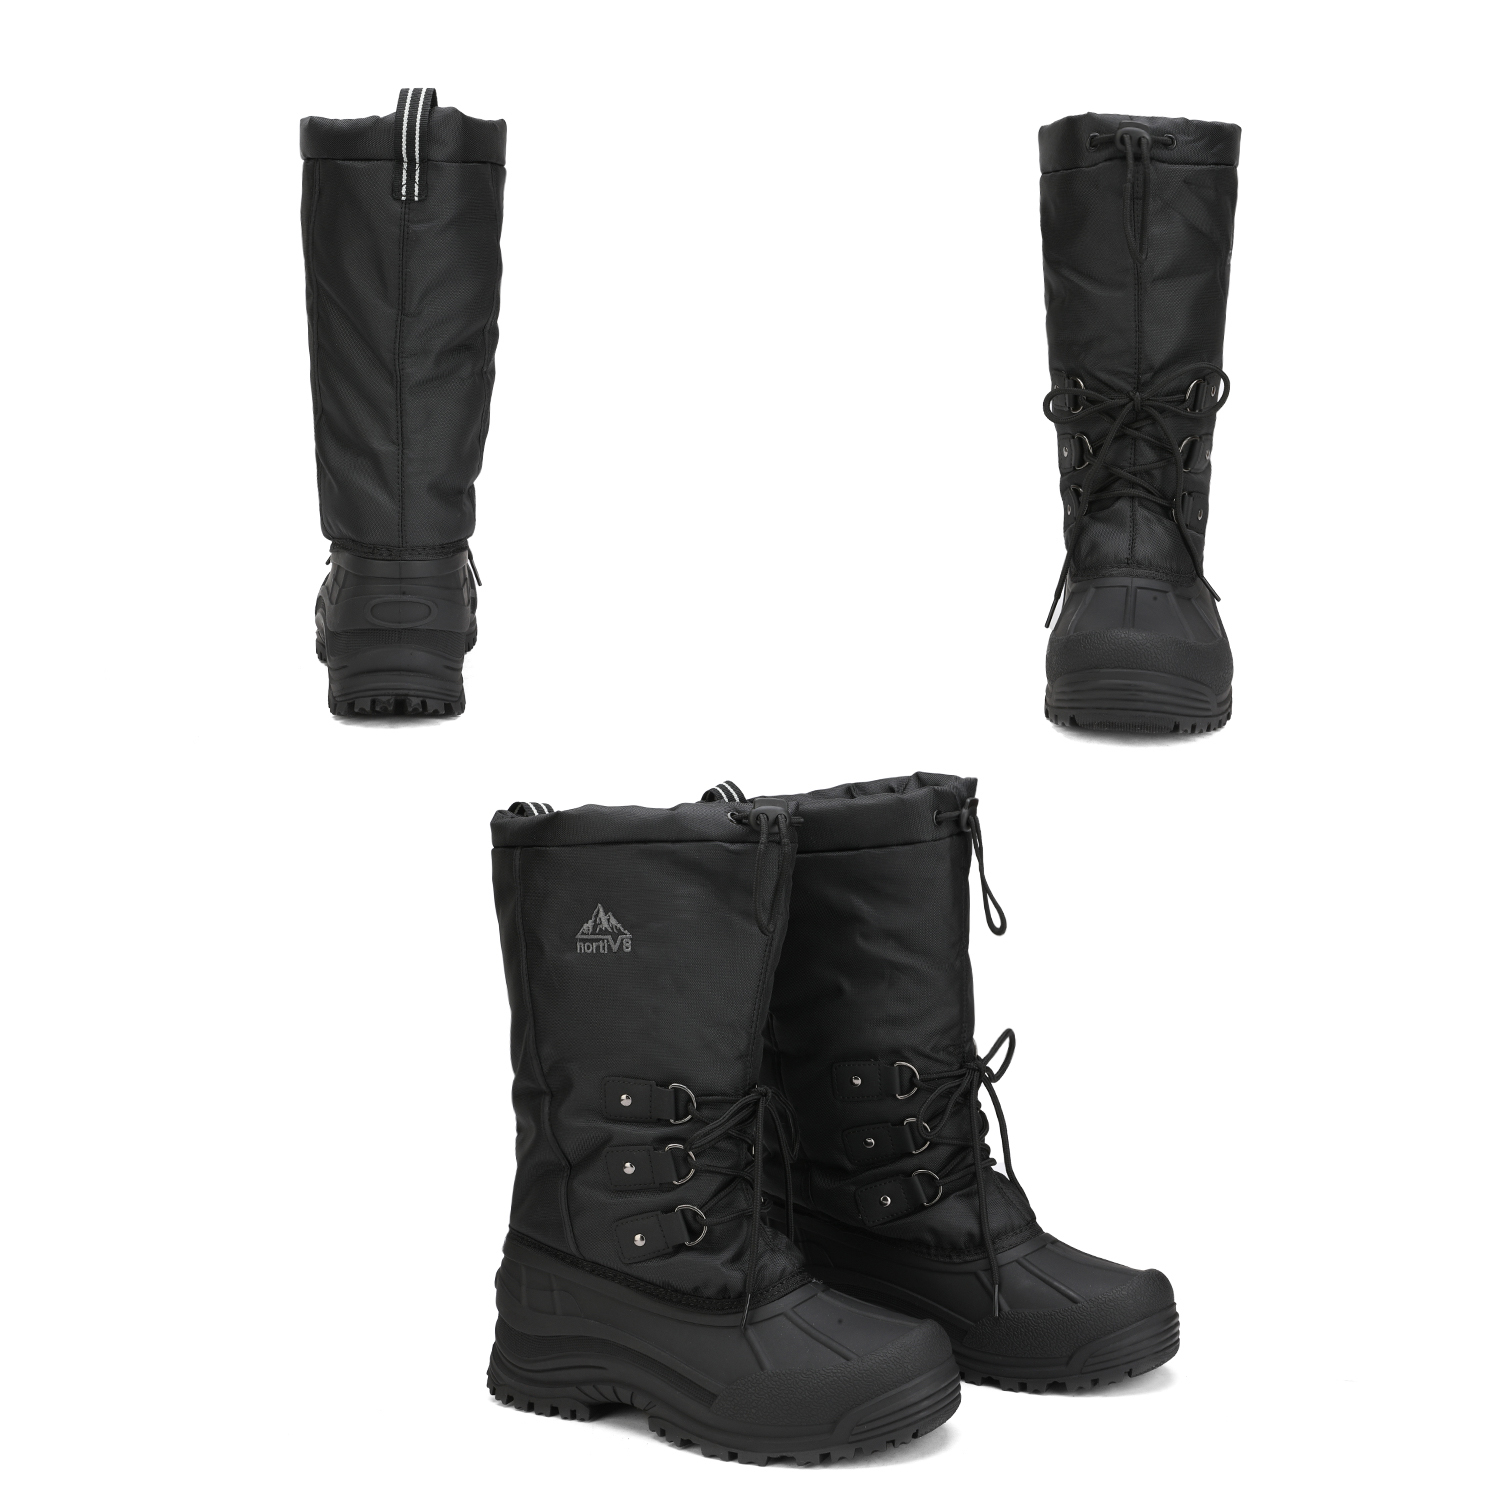 NORTIV-8-Men-039-s-Winter-Snow-Boots-Waterproof-Warm-Thermolite-Outdoor-Hiking-Boots thumbnail 22